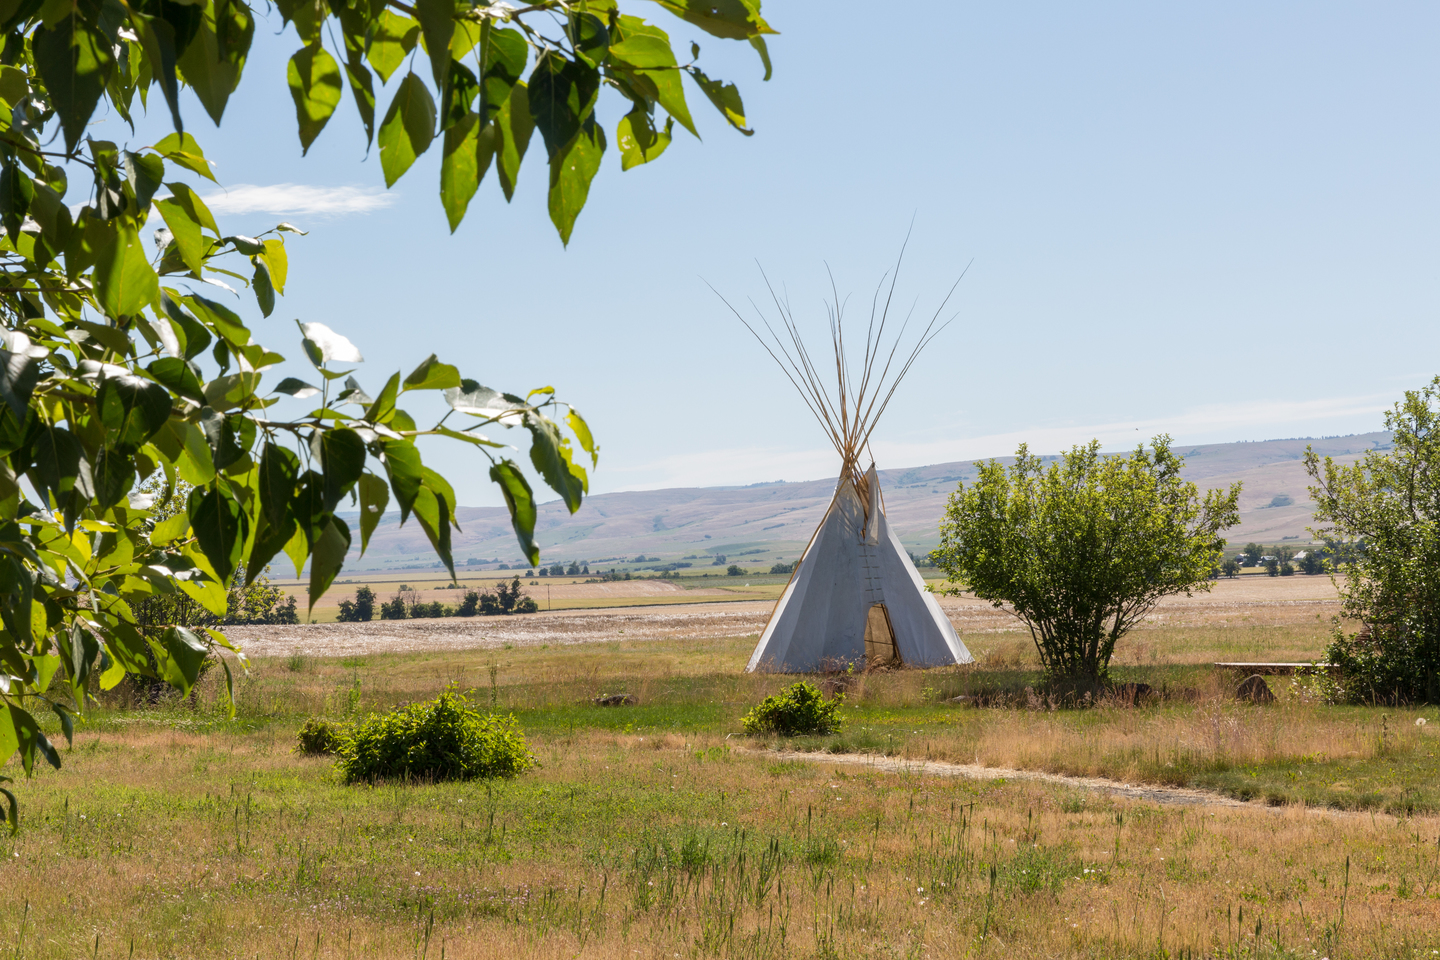 Teepee in grassy field at The Tamástslikt Cultural Institute is a museum and research institute located on the Umatilla Indian Reservation near Pendleton in eastern Oregon.